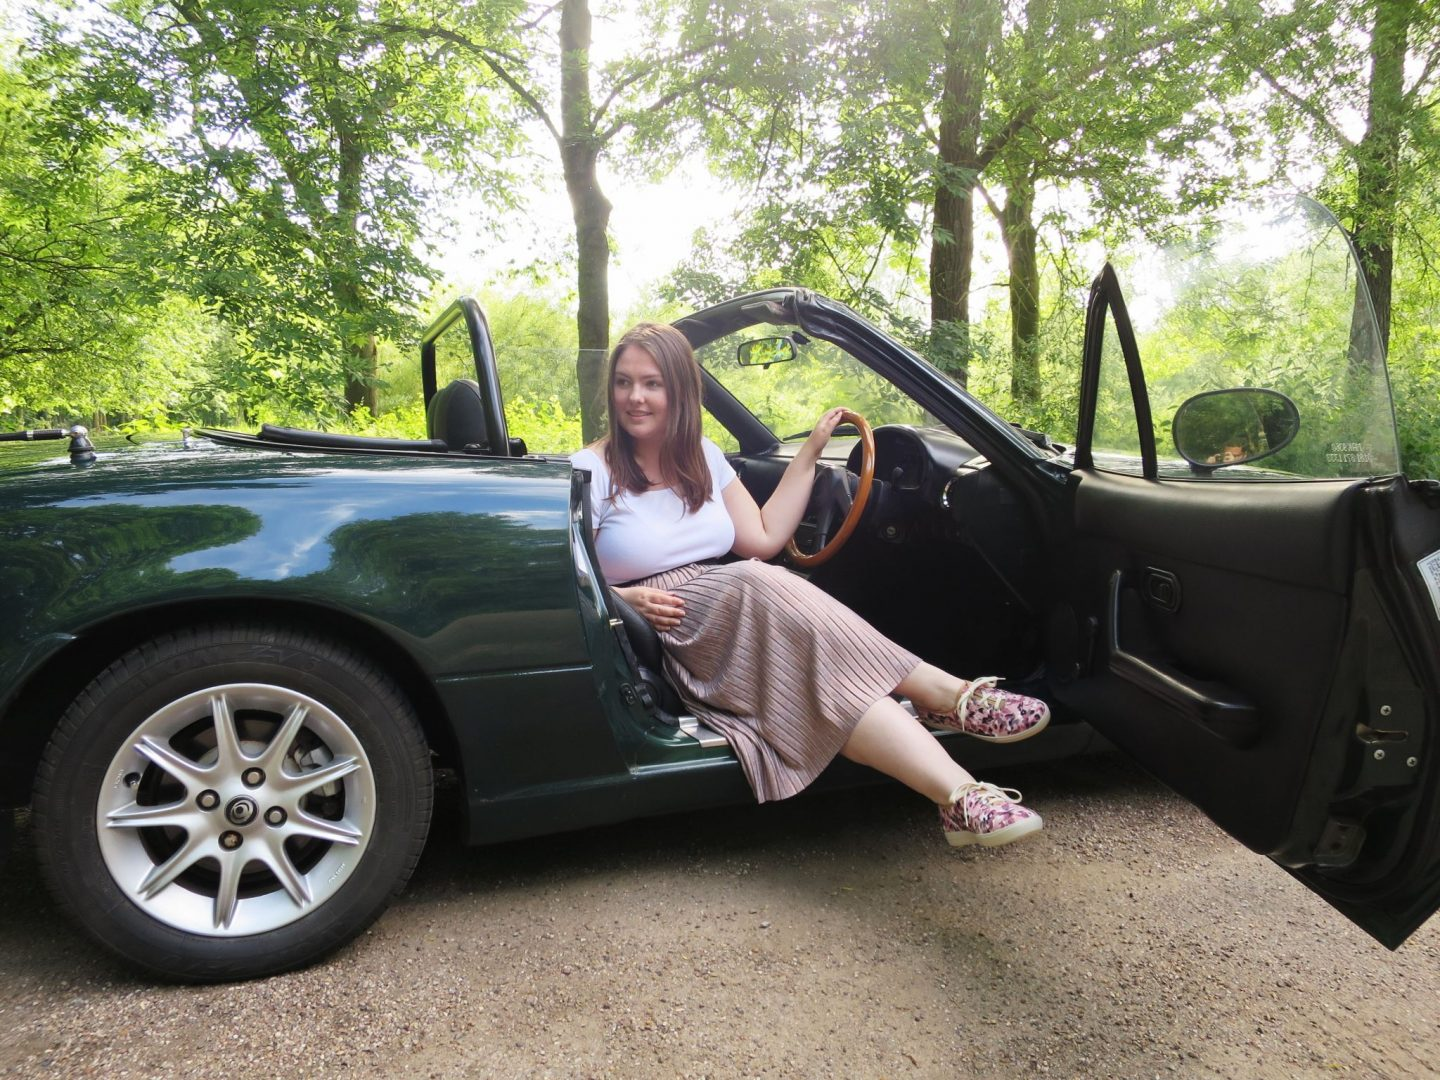 Wearning my Mabel shoes by Hotter - sitting in a Mazda MX-5